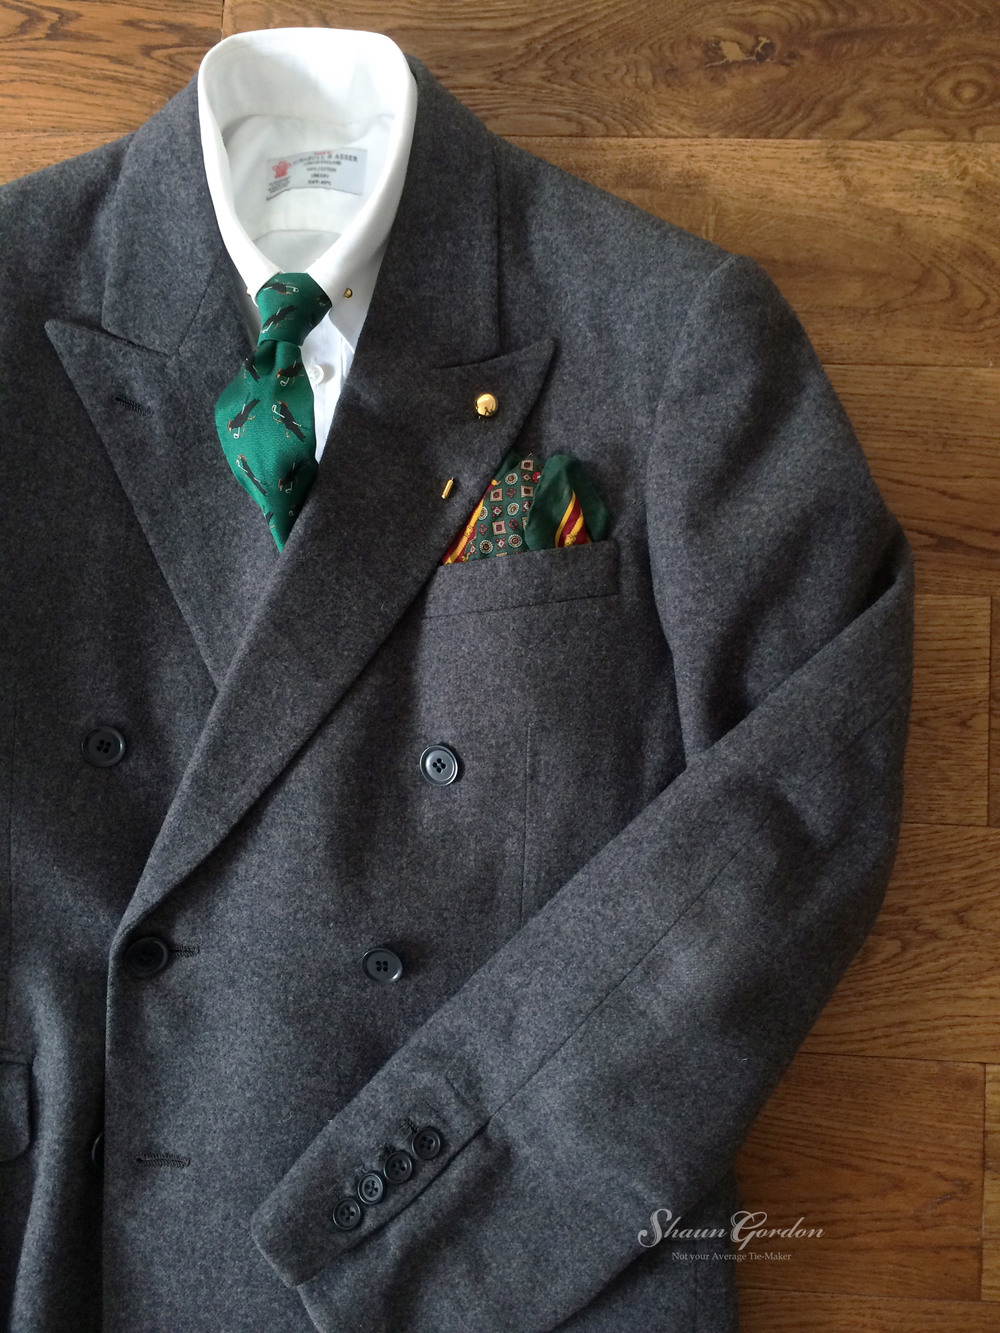 Grey Inspiration: One thing I like about grey is that it allows you to experiment and use bold colours like red, cobalt blue and even emerald green. In this case the Ernest tie gives a bold impression.